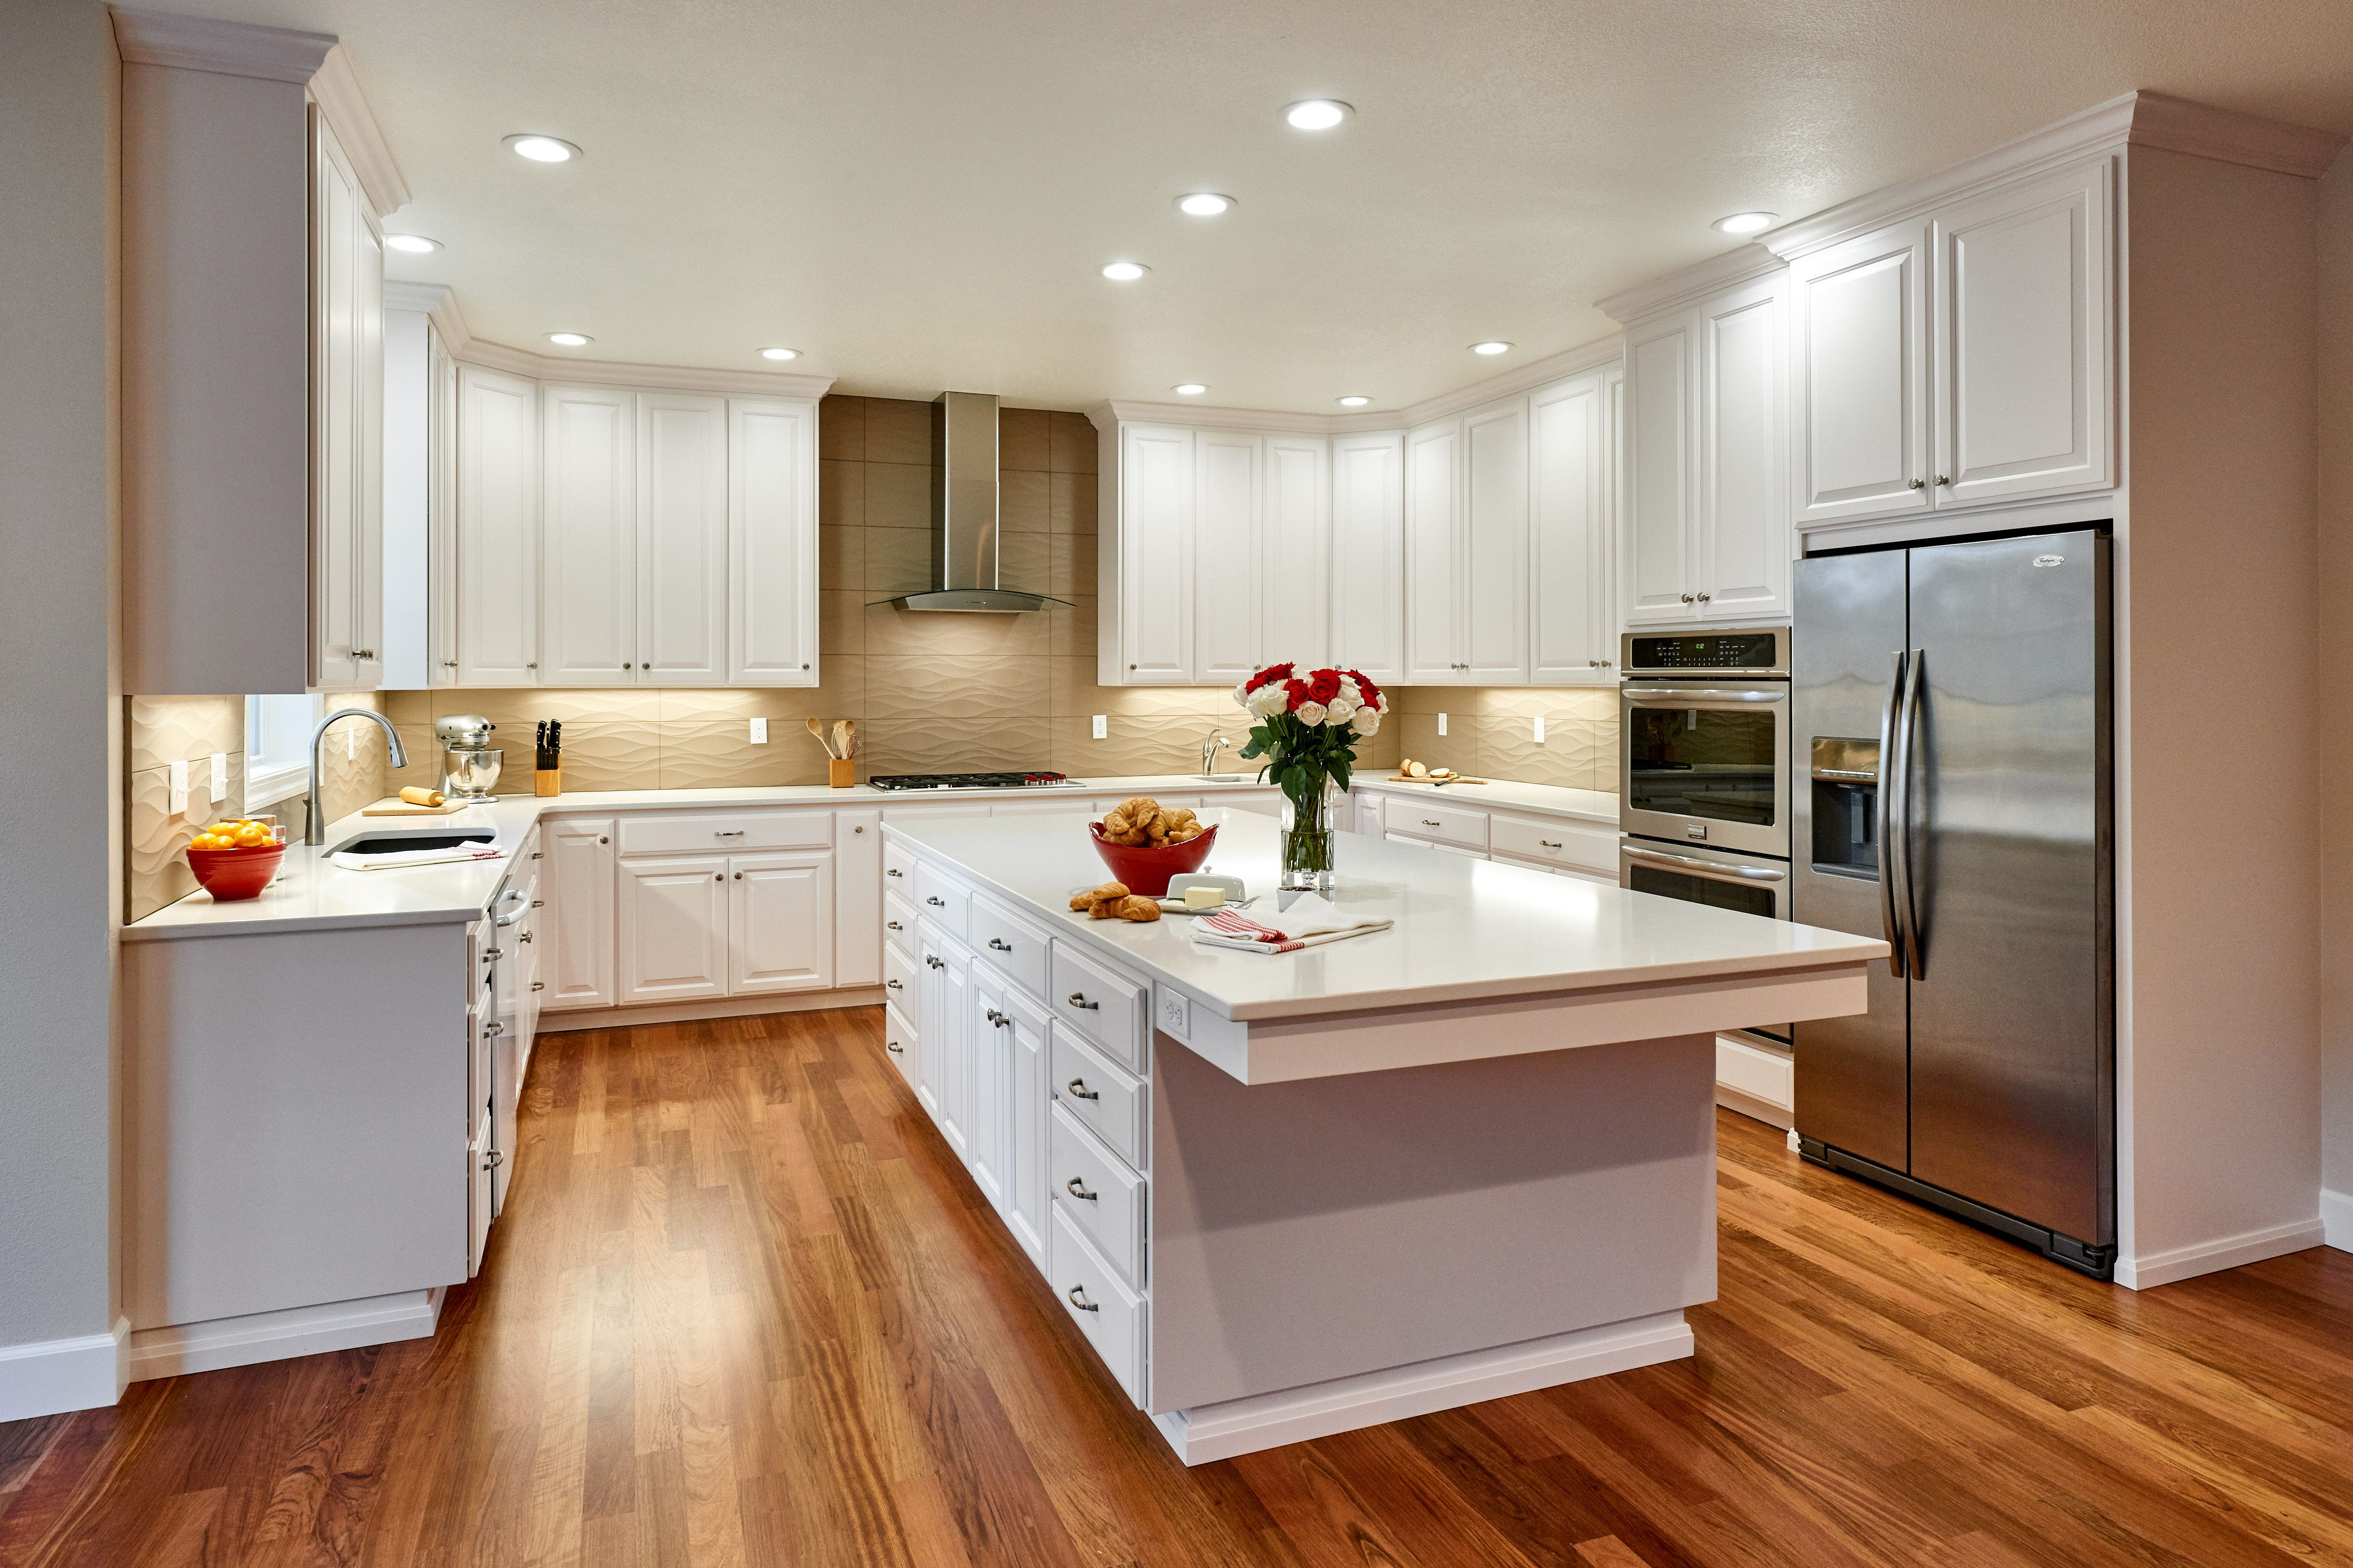 White Custom Cabinets And White Silestone Countertops In The New Kitchen Create The Bright Clean Feeling The Cli Kitchen Wood Floors Wide Plank Kitchen Design